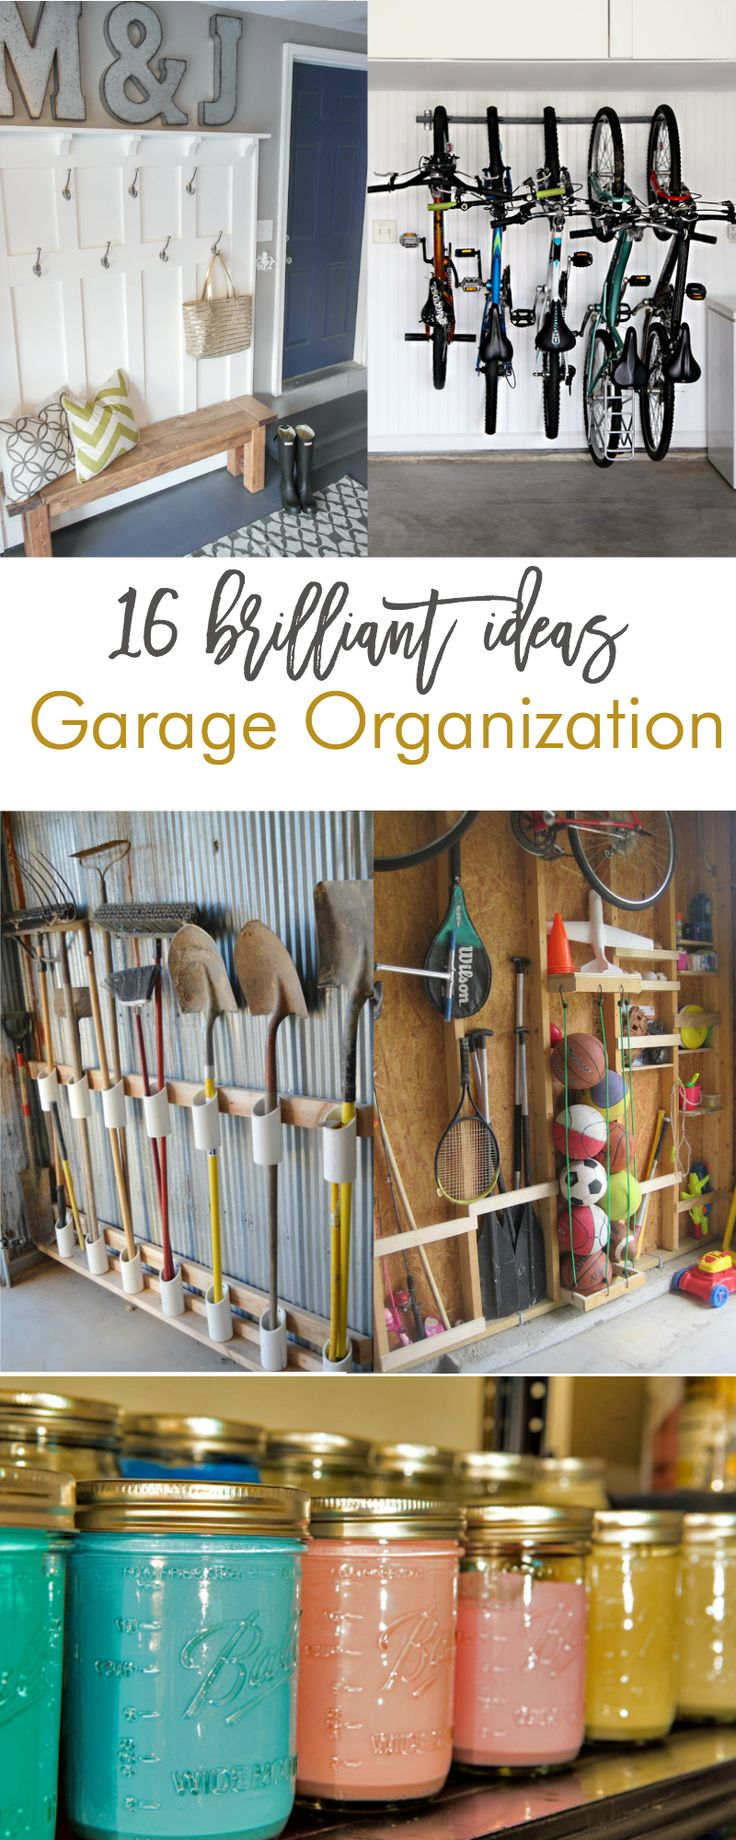 16 Brilliant DIY Garage Organization Ideas 28